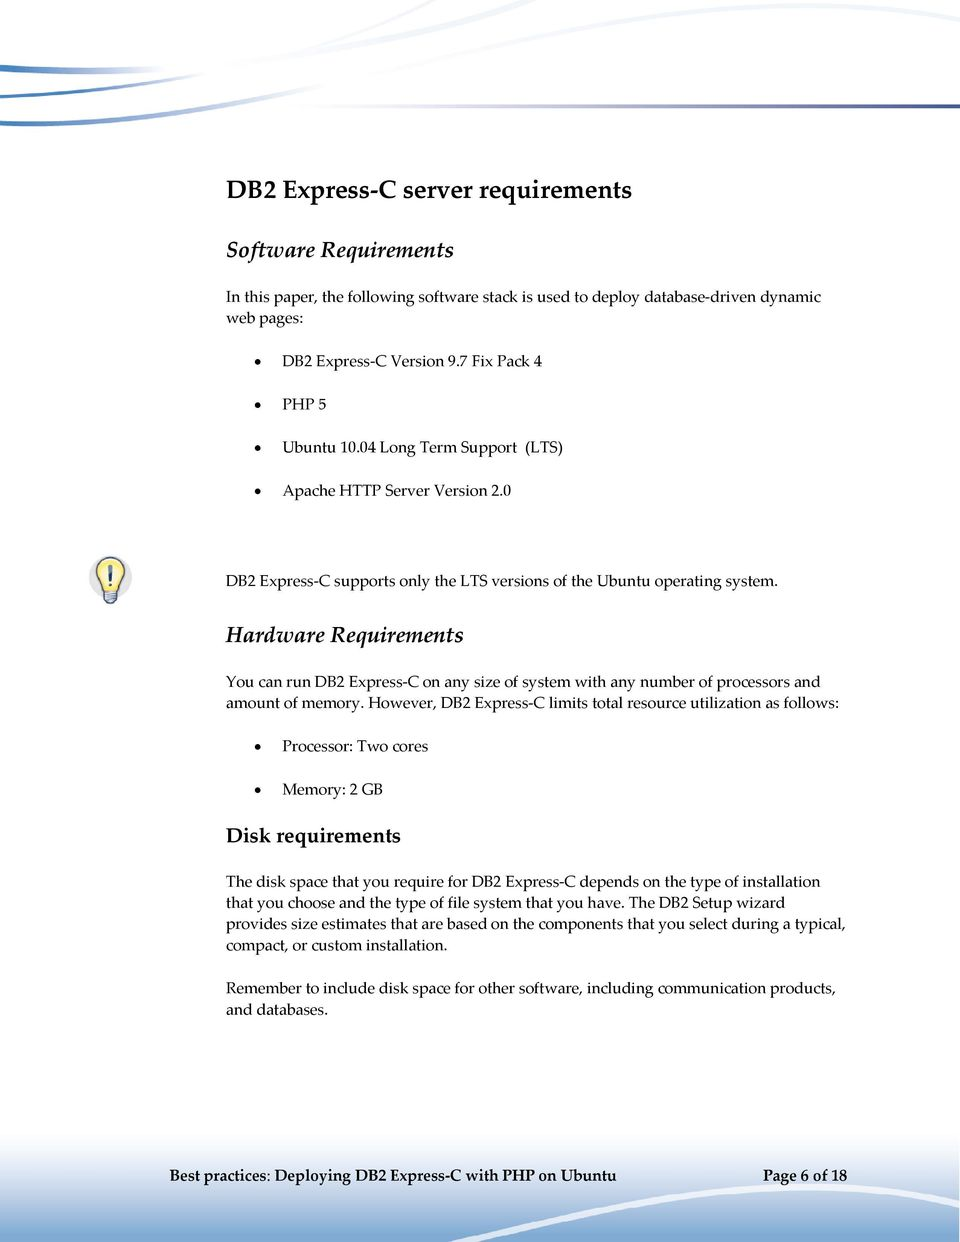 Hardware Requirements You can run DB2 Express-C on any size of system with any number of processors and amount of memory.